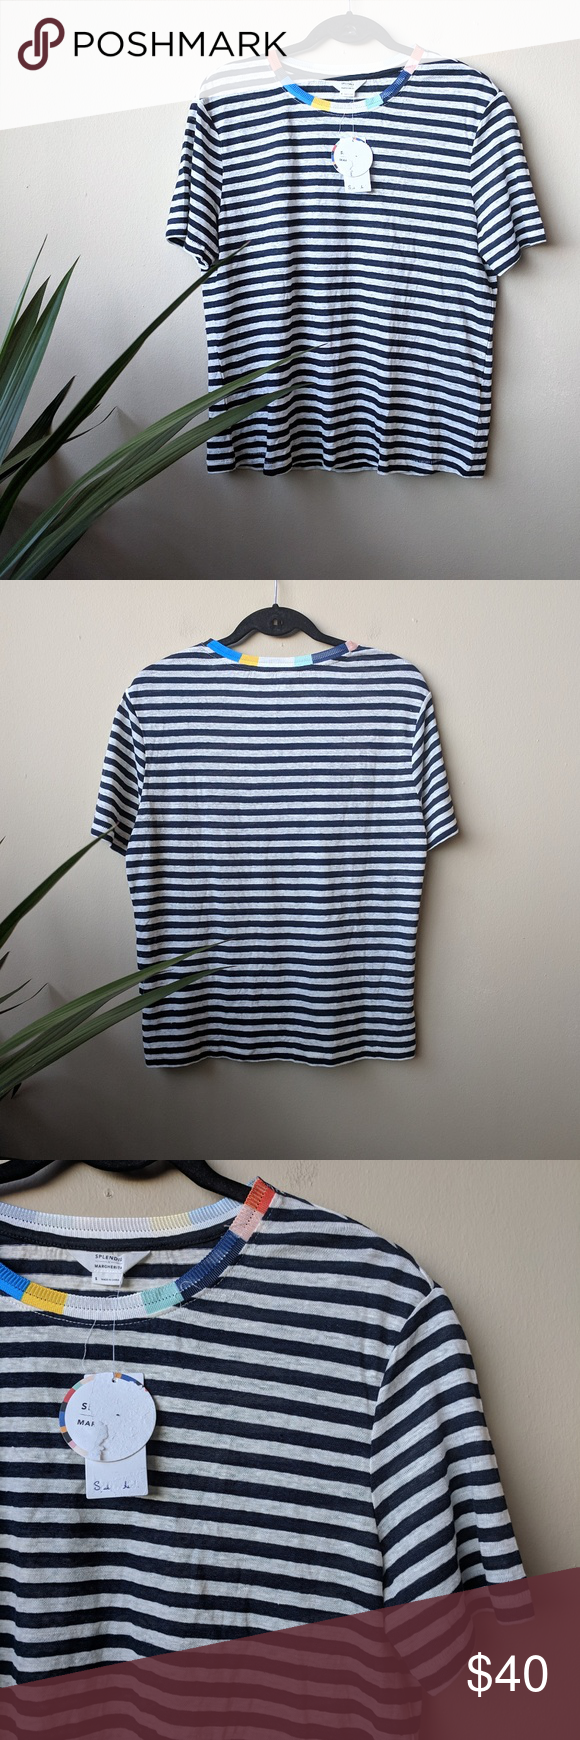 c6d1bac0f2 Splendid X Margherita Ciao Bella Striped Navy Tee NWT Splendid X Margherita  Ciao Bella navy and neutral white striped shirt with rainbow multicolor  neckline ...